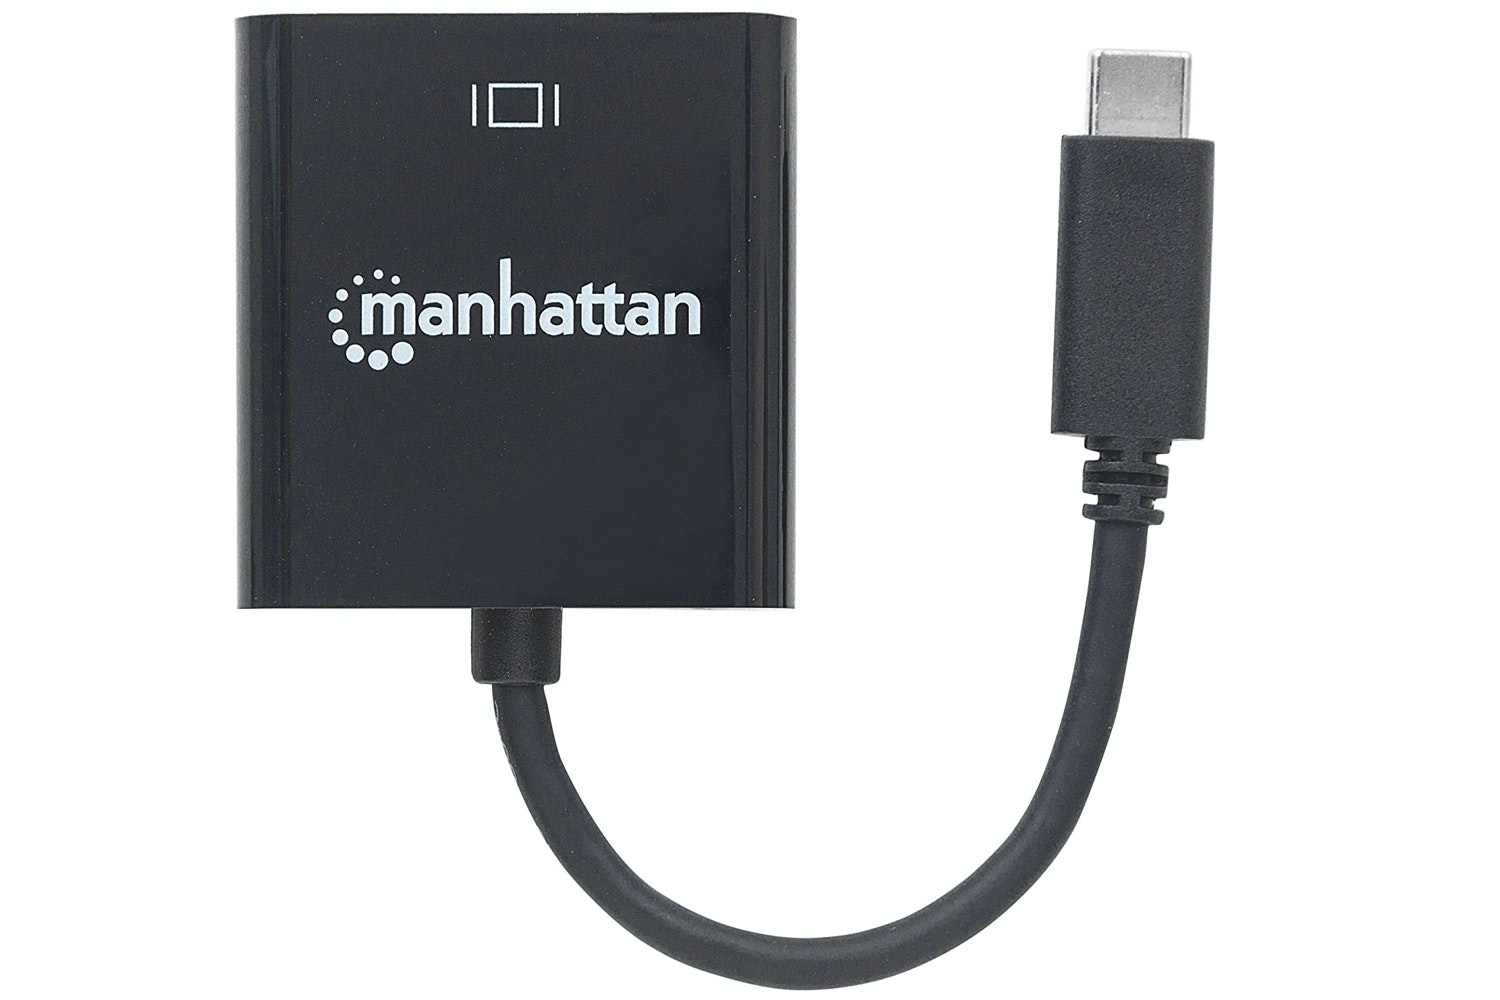 Manhattan USB Type-C to VGA Converter